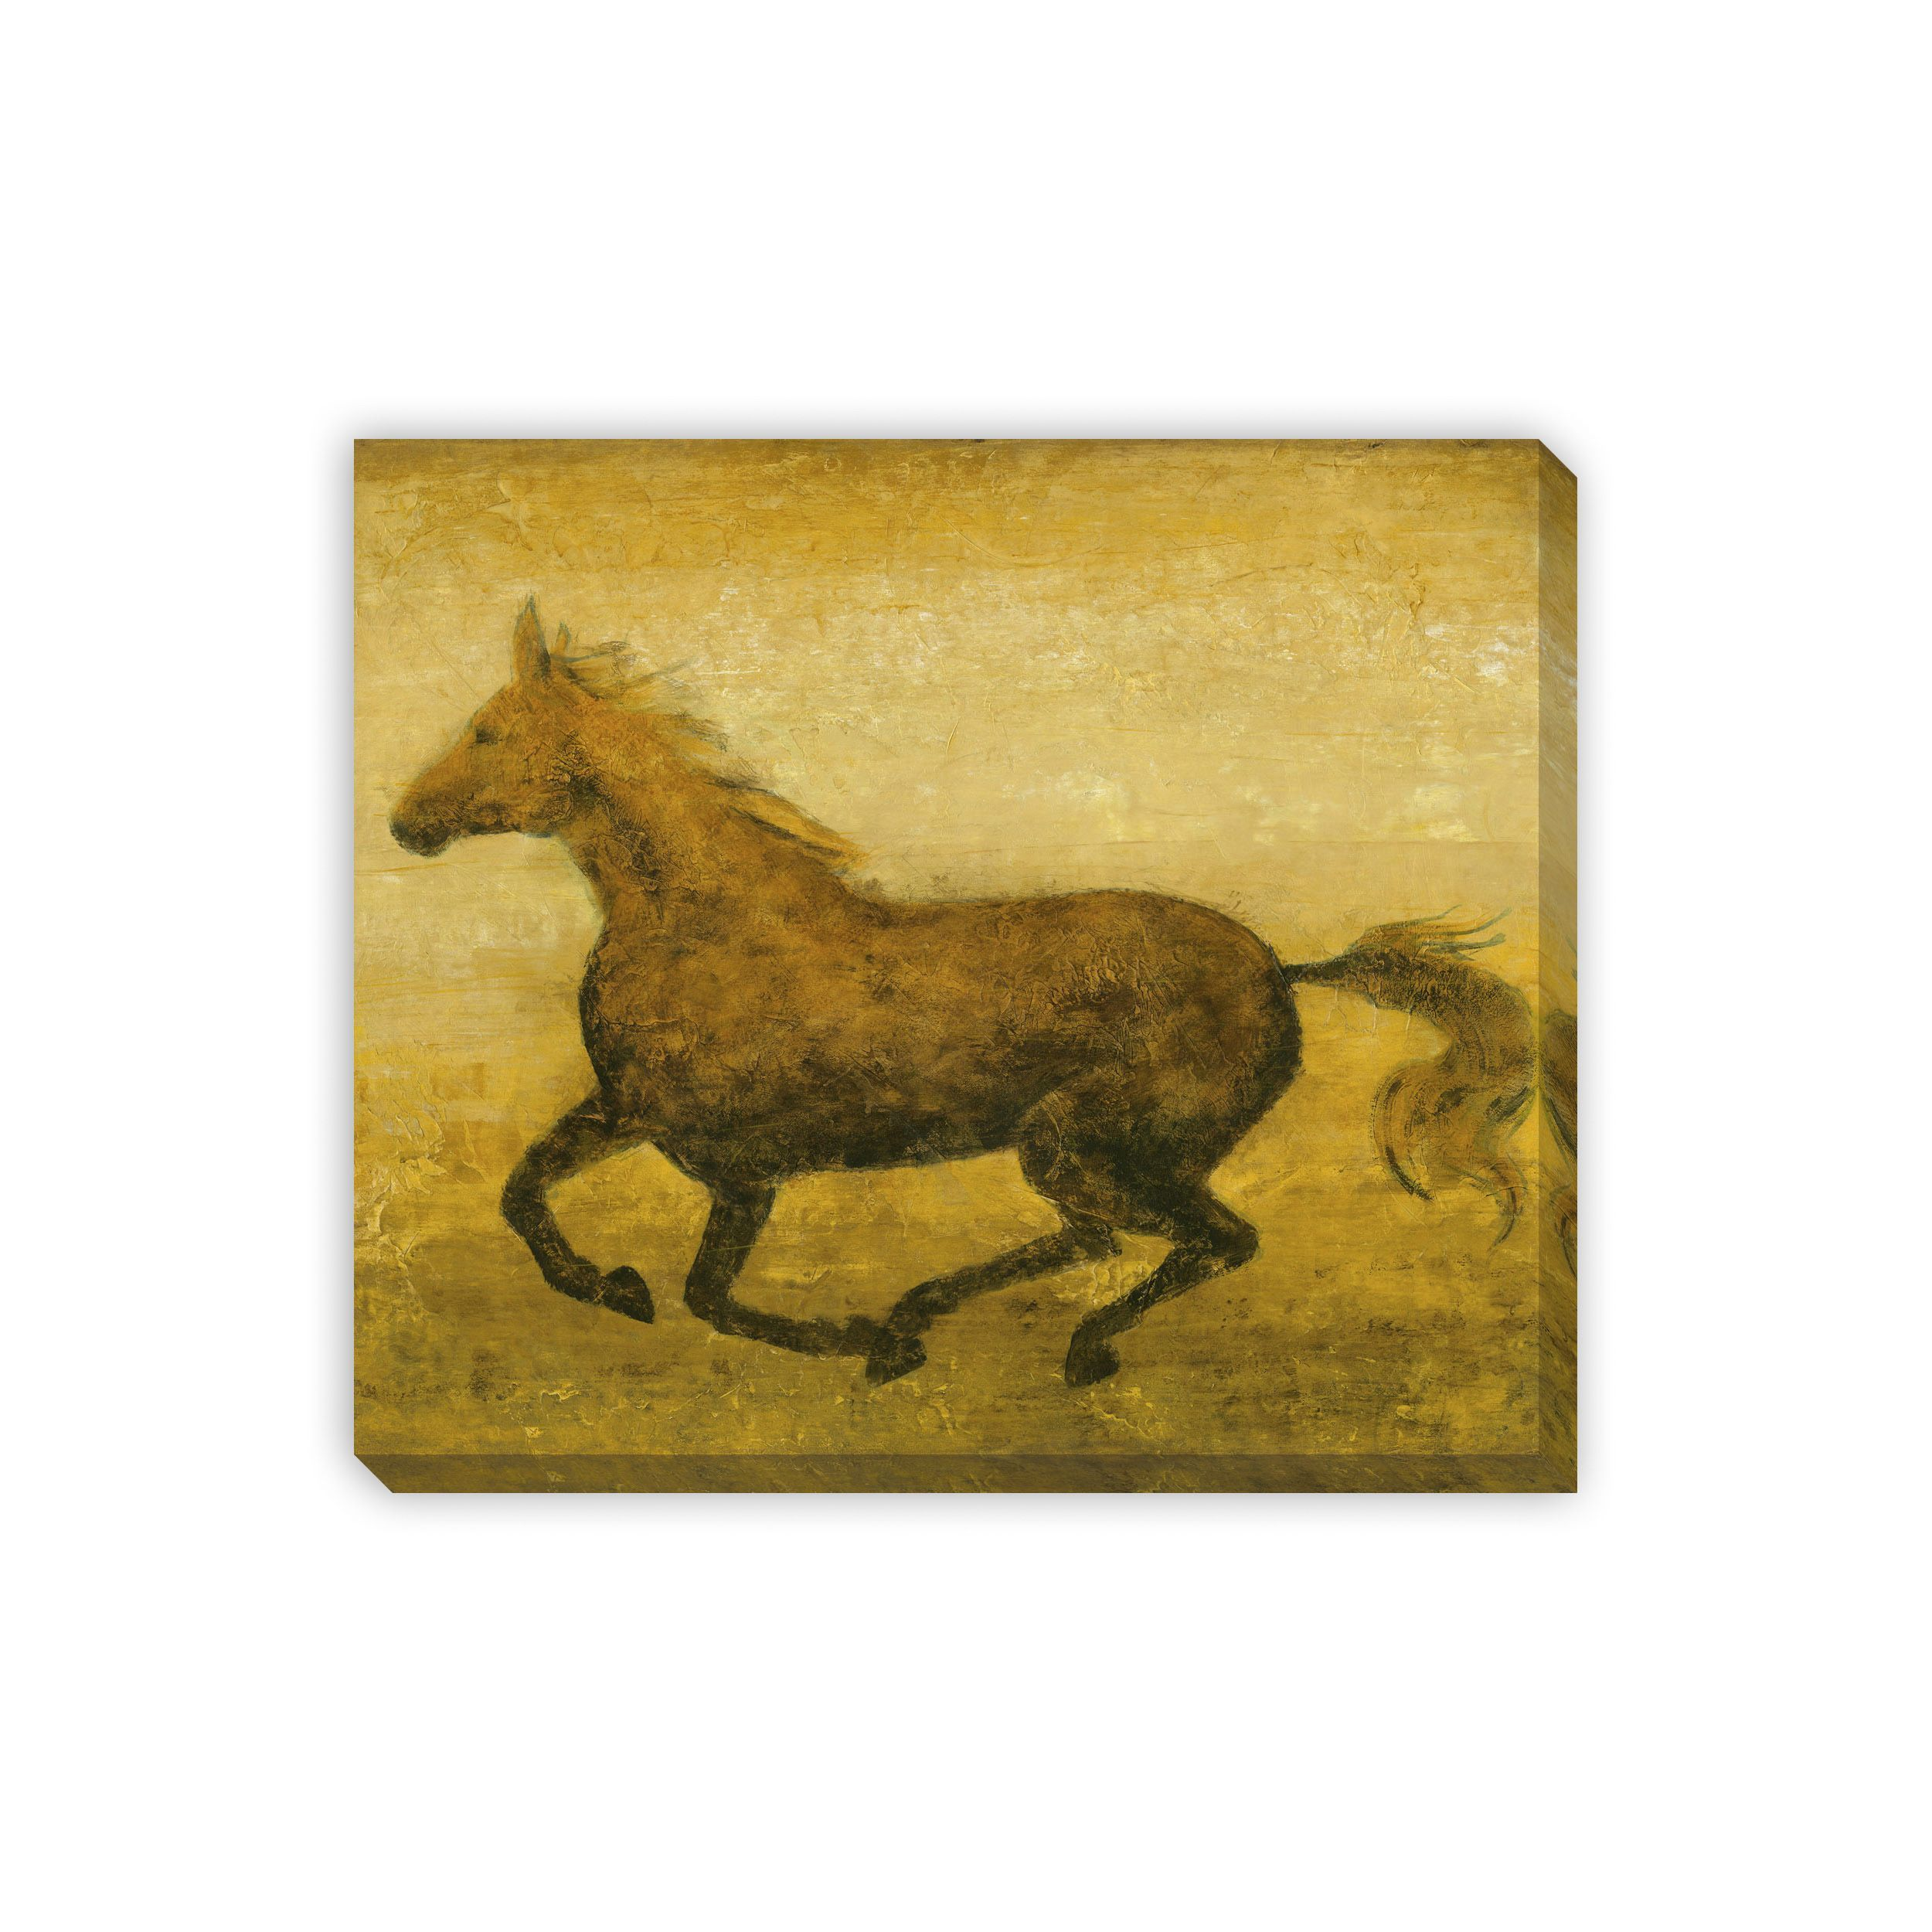 Gallery Direct Equis IV Canvas Gallery Wrap Wall Art | Products ...